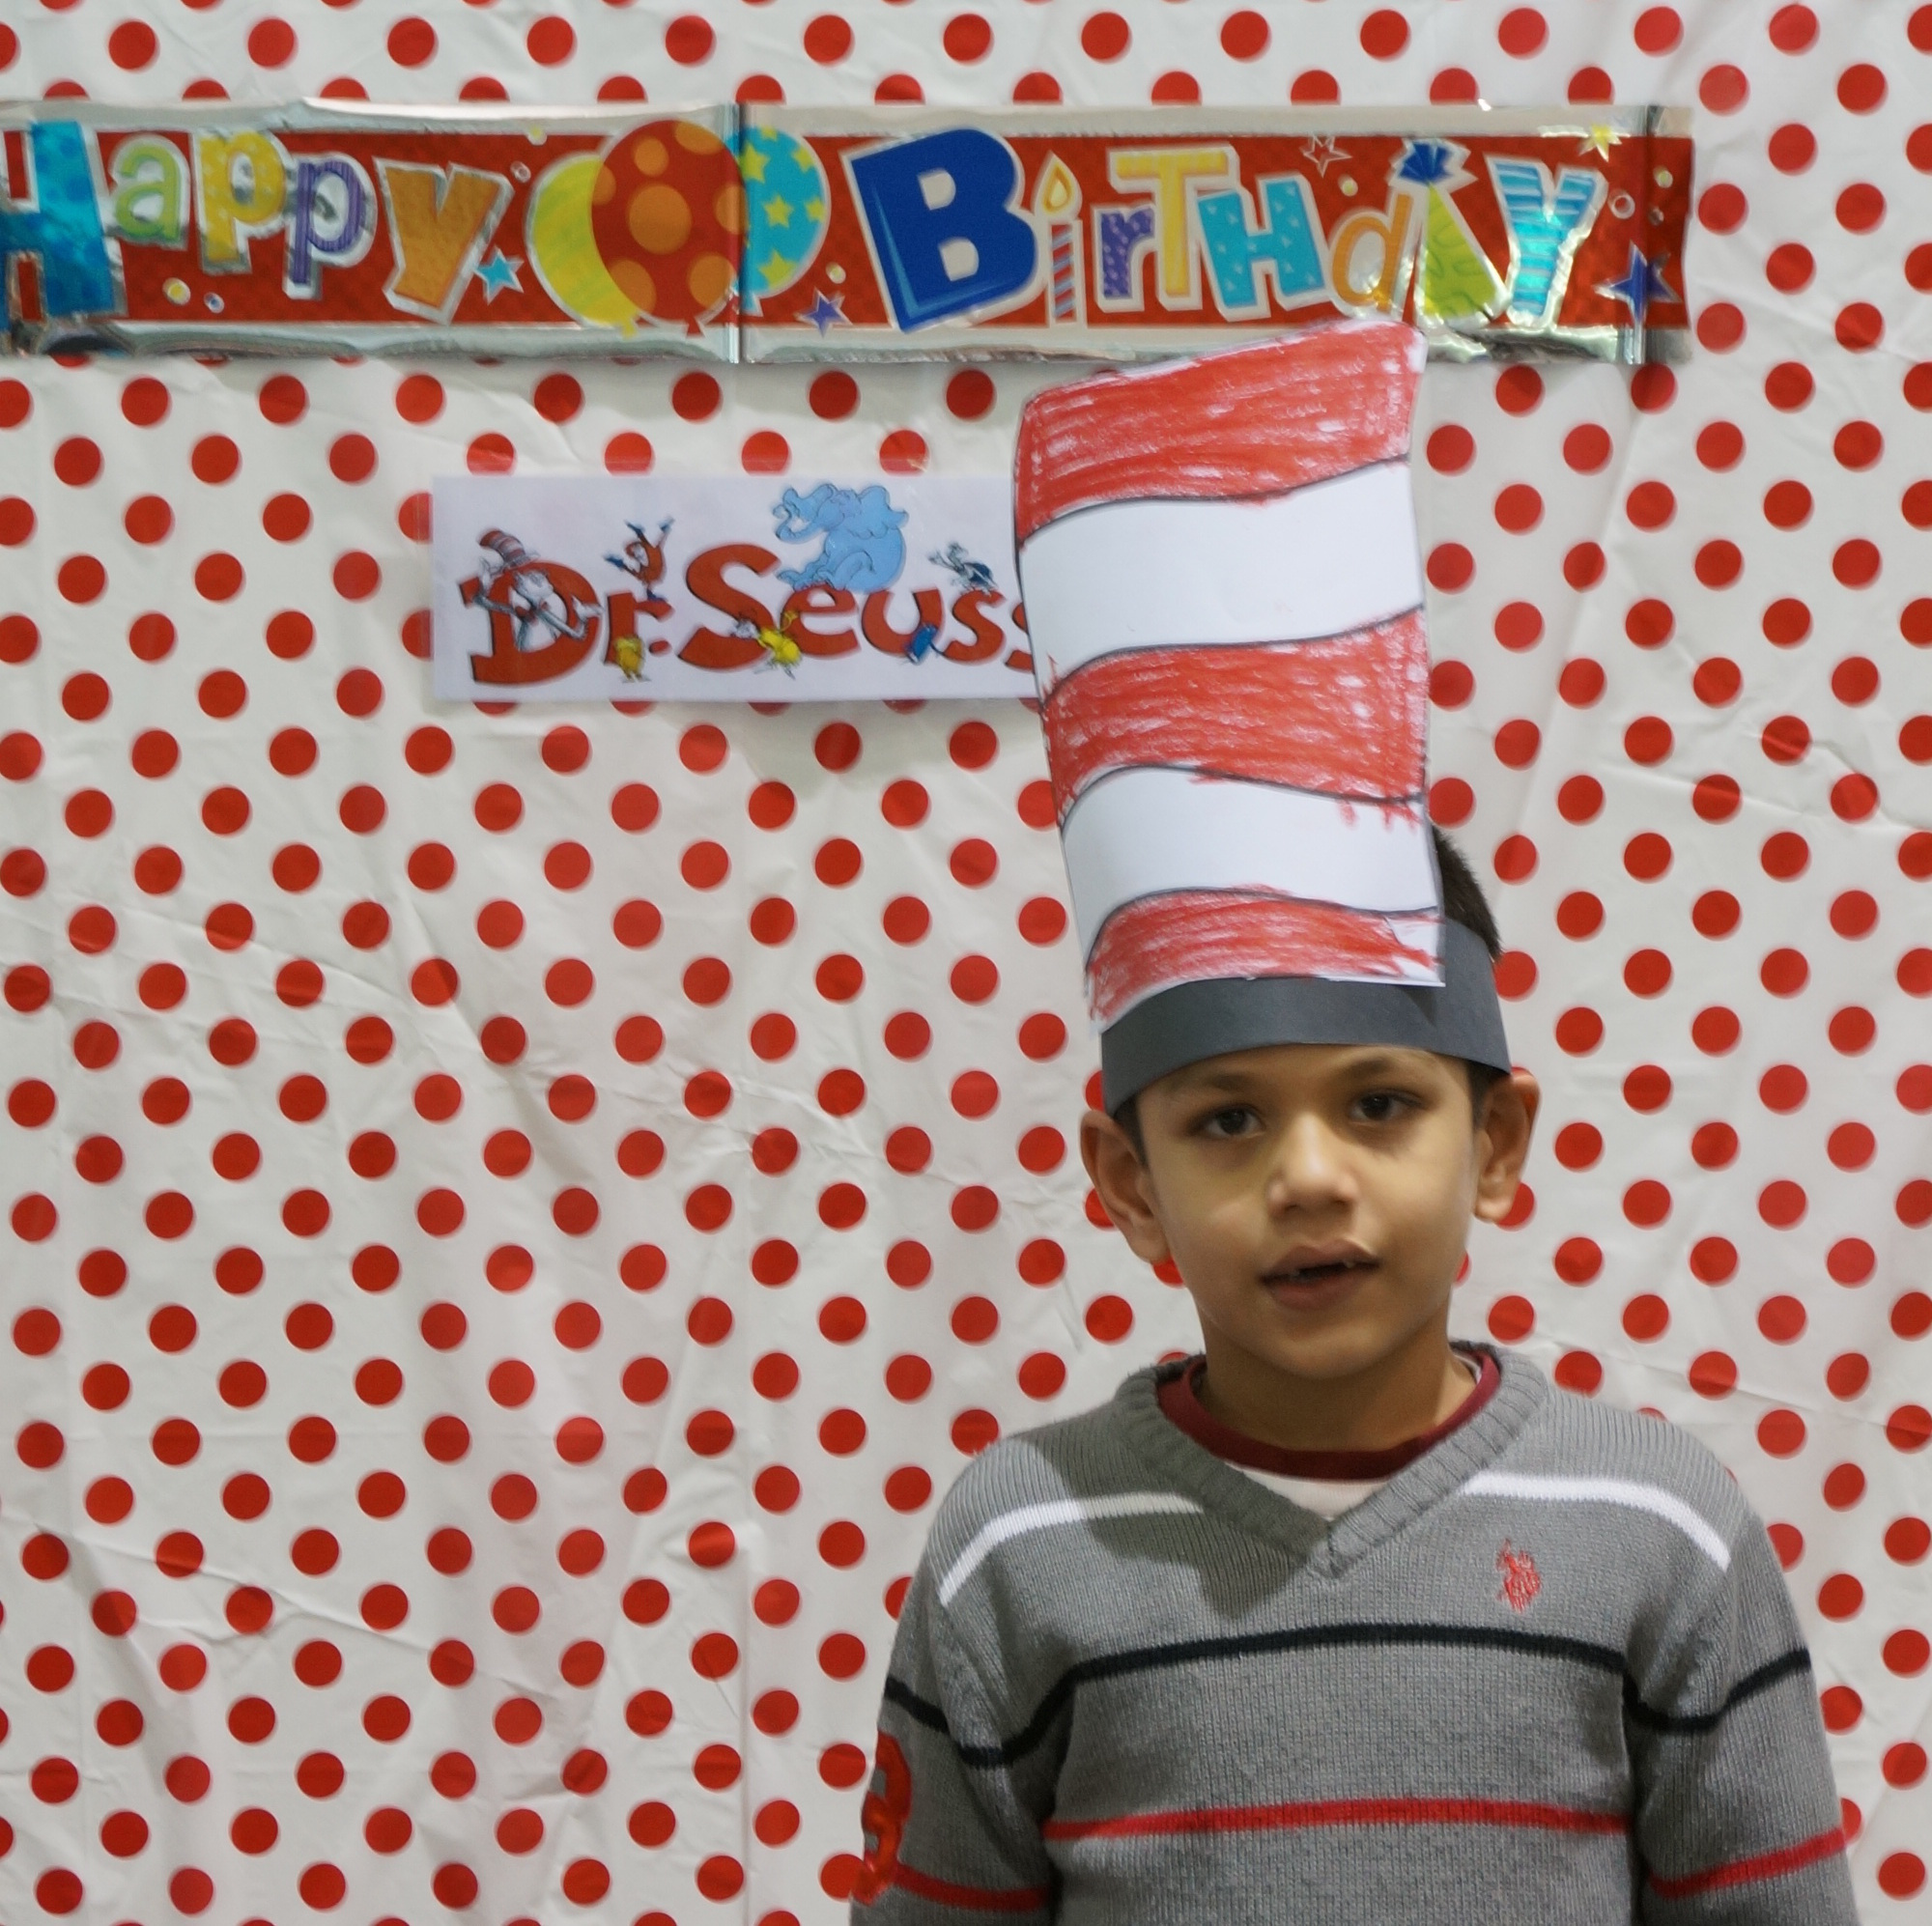 94508769abc887bca841_best_Dr._Seuss_036_Ahan_and_Eva_Banerjee_crop.jpg